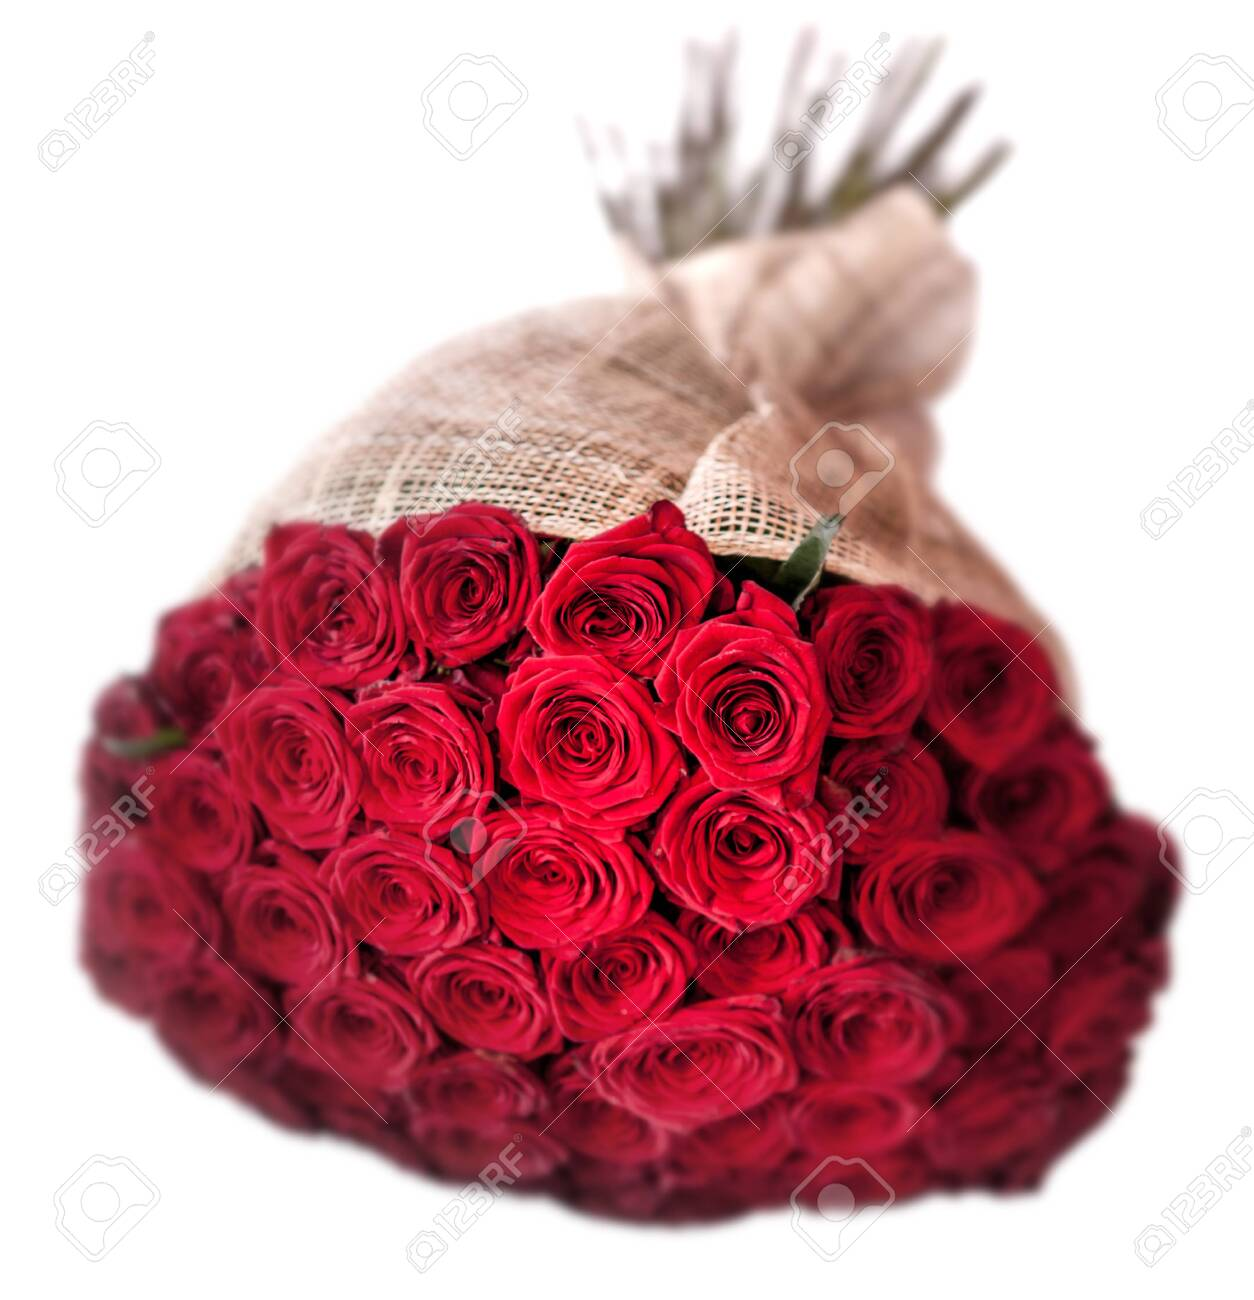 50 Roses In A Bouquet Stock Photo Picture And Royalty Free Image Image 146873199